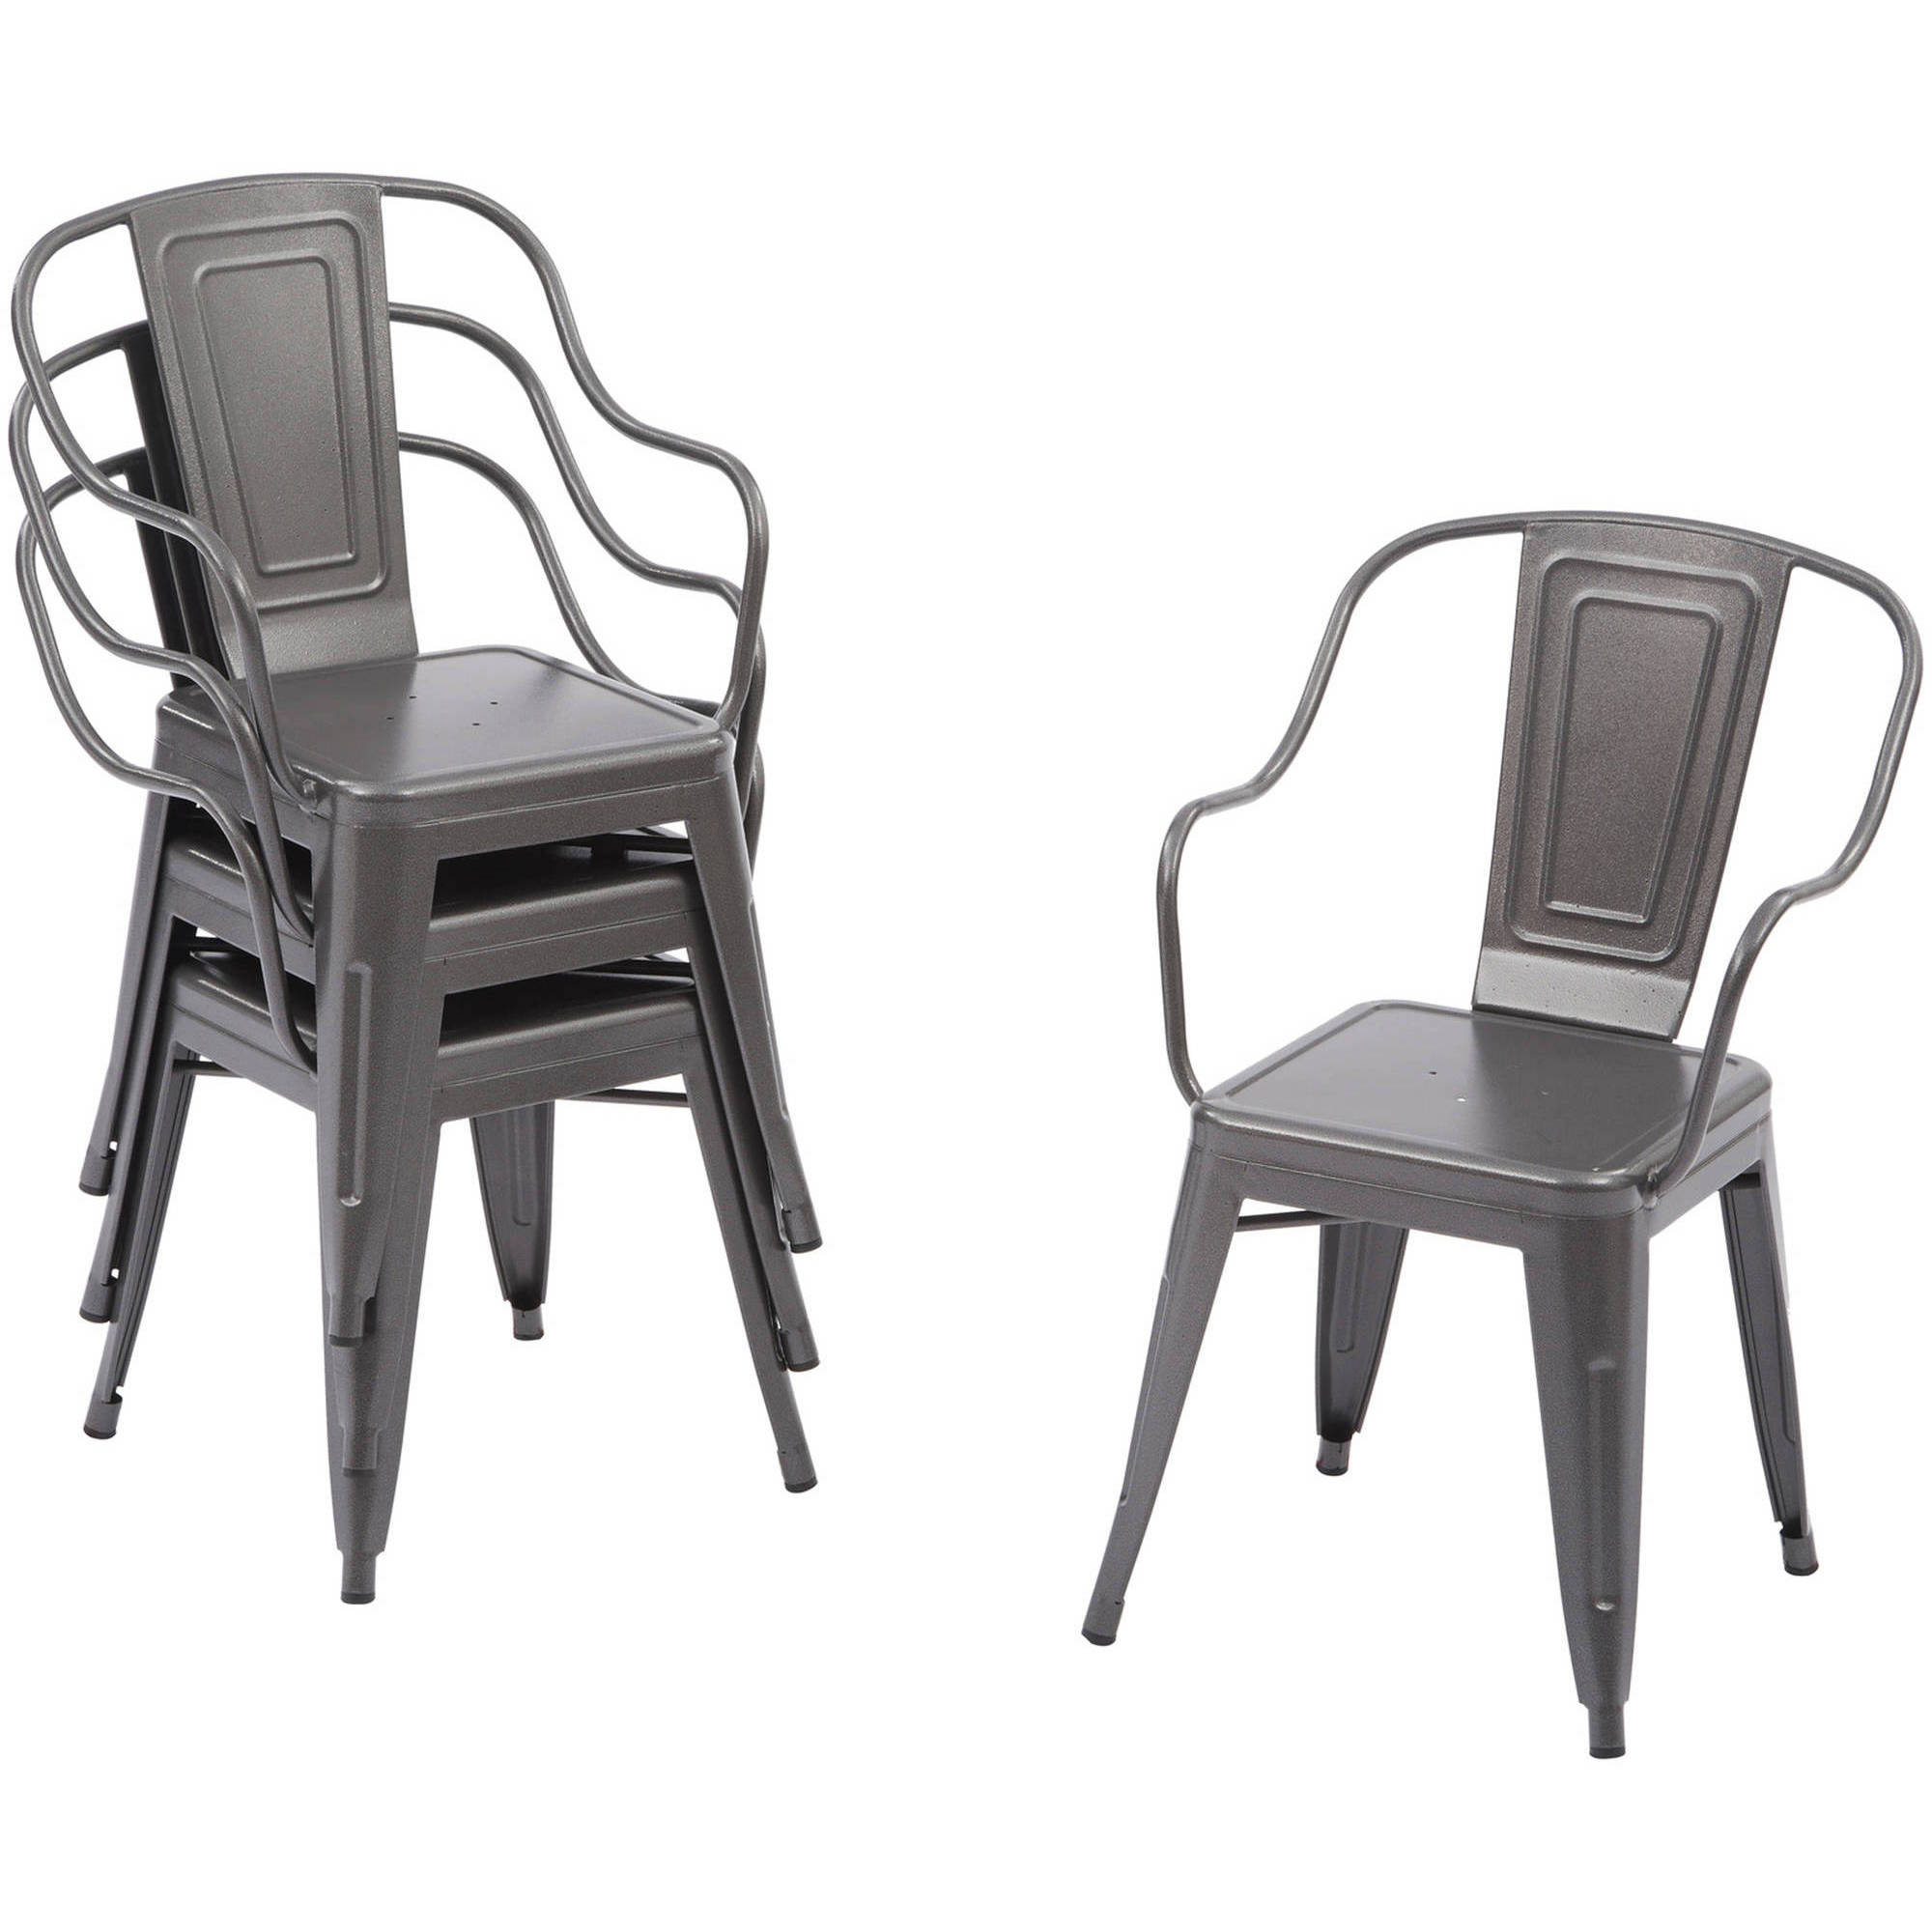 Better Homes And Gardens Camrose Farmhouse Industrial Chairs, 4pk